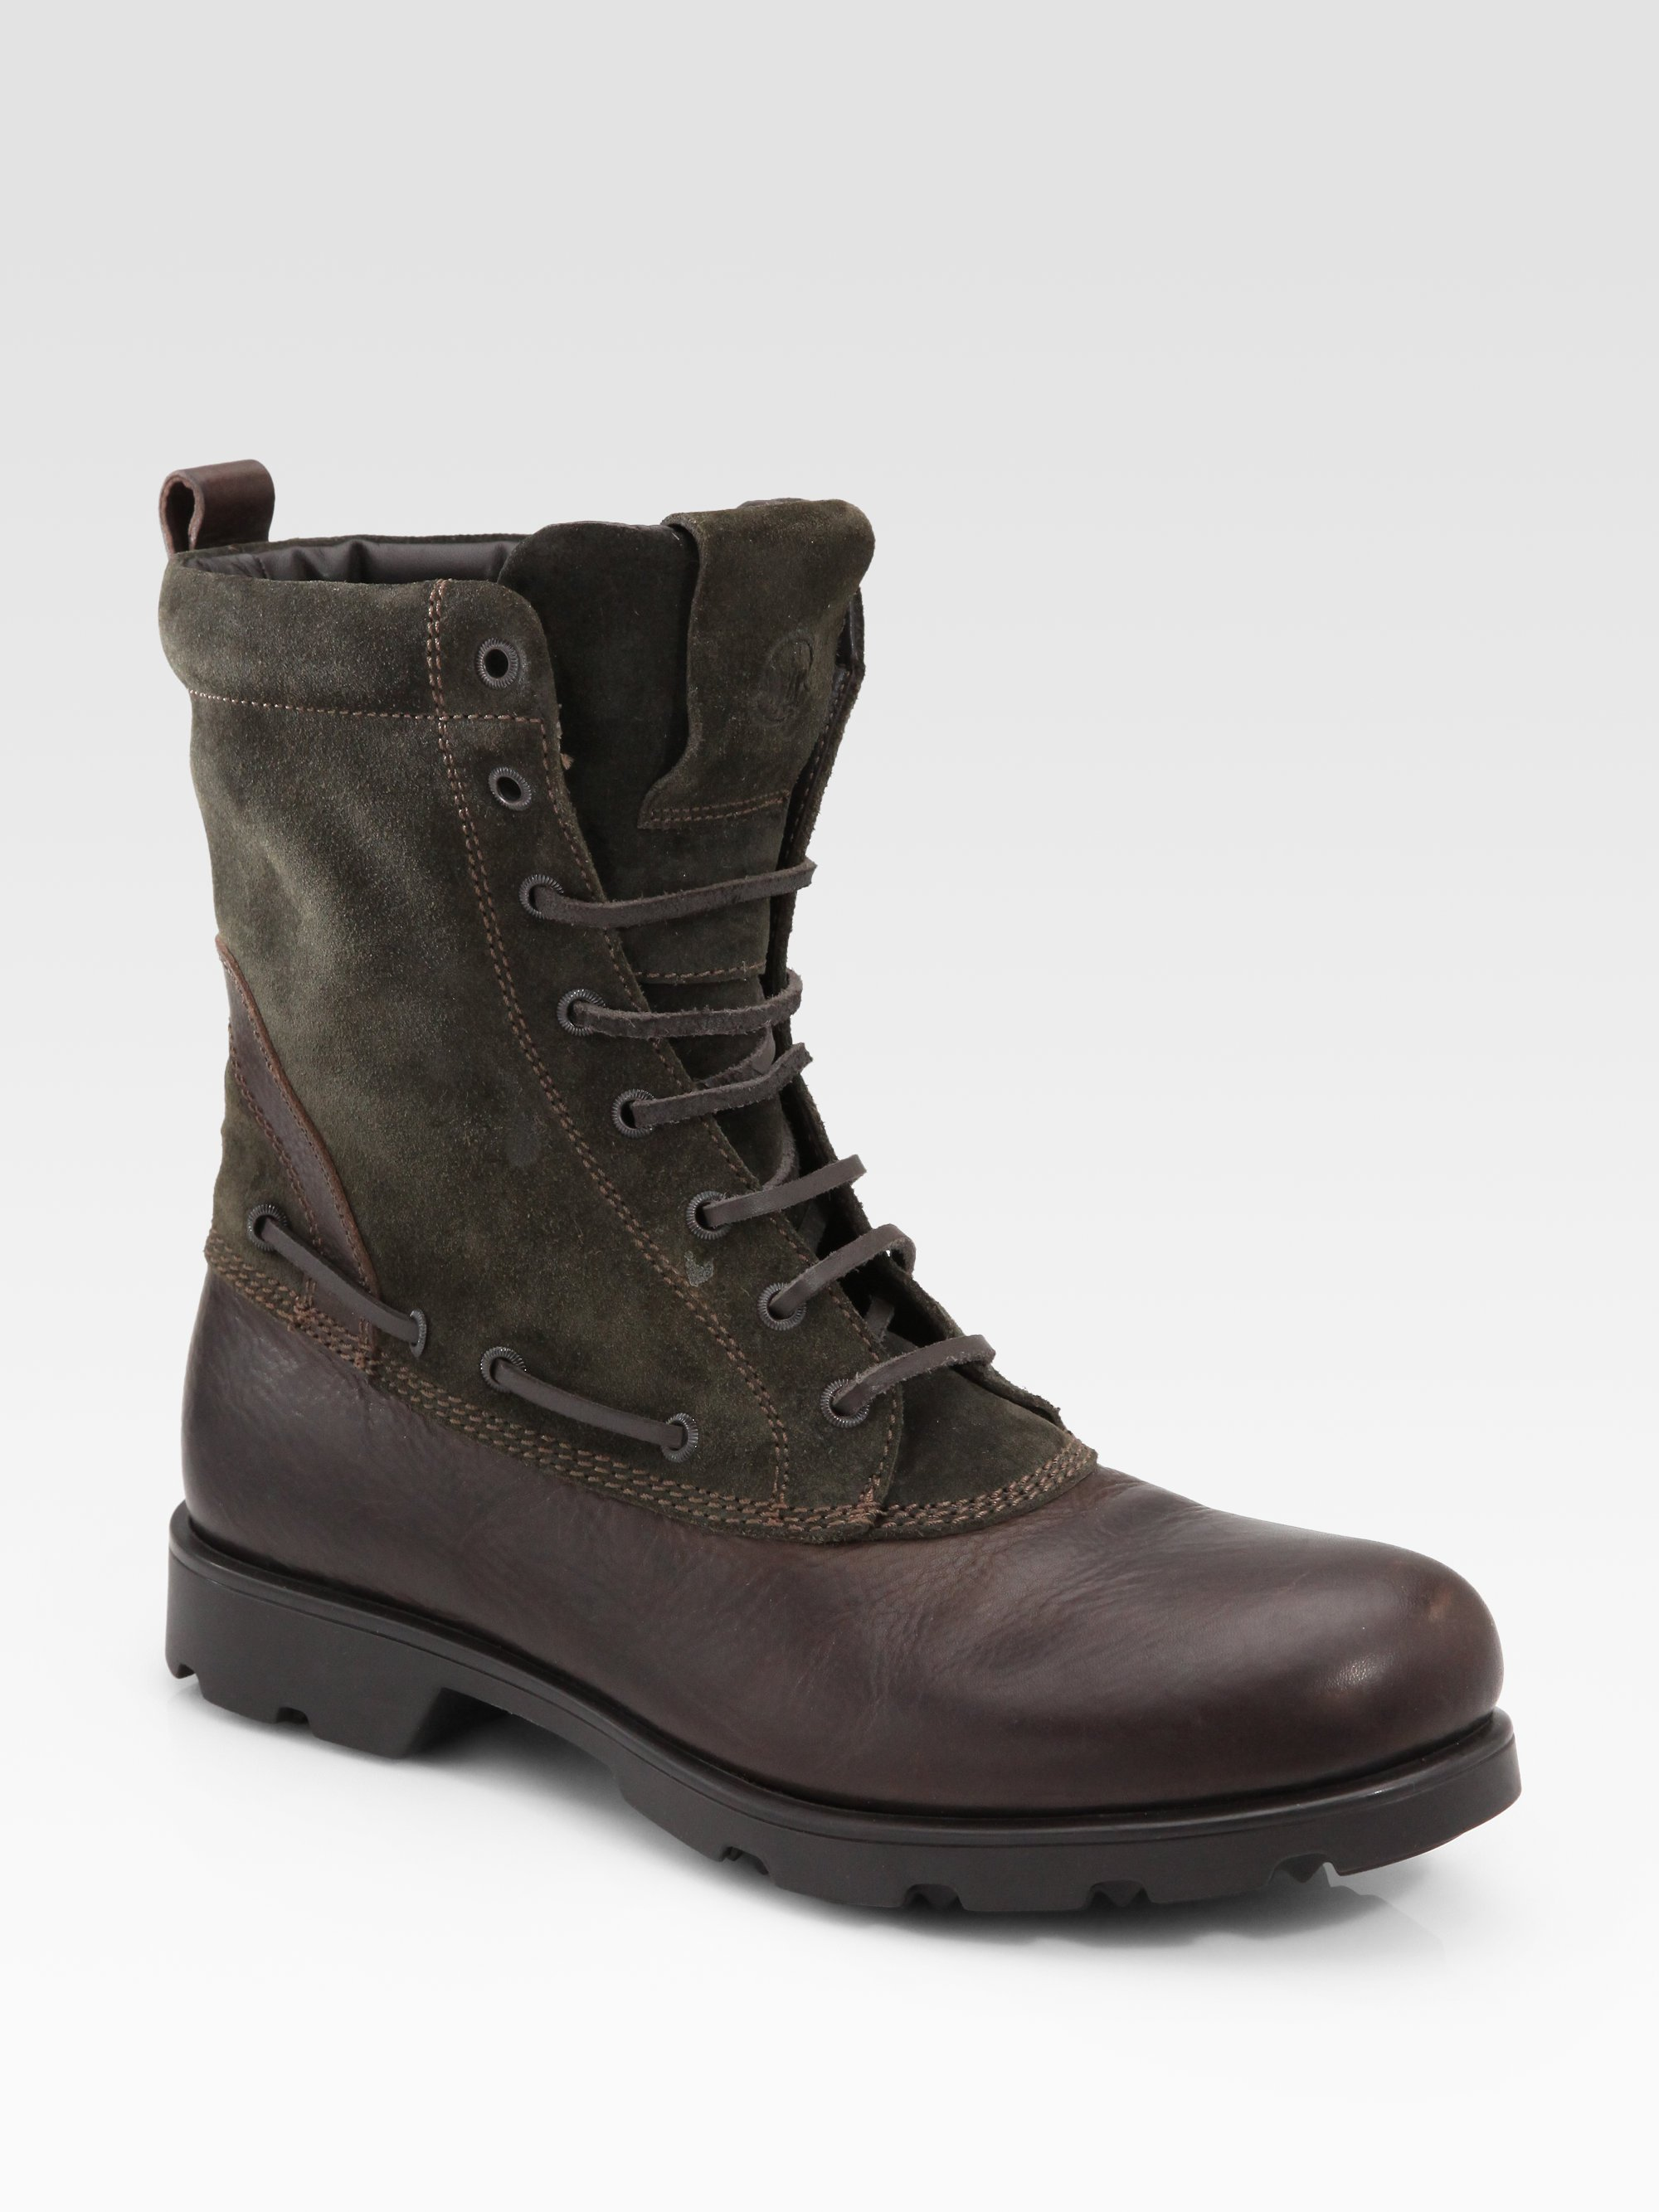 moncler 'vancouver' shearling boot